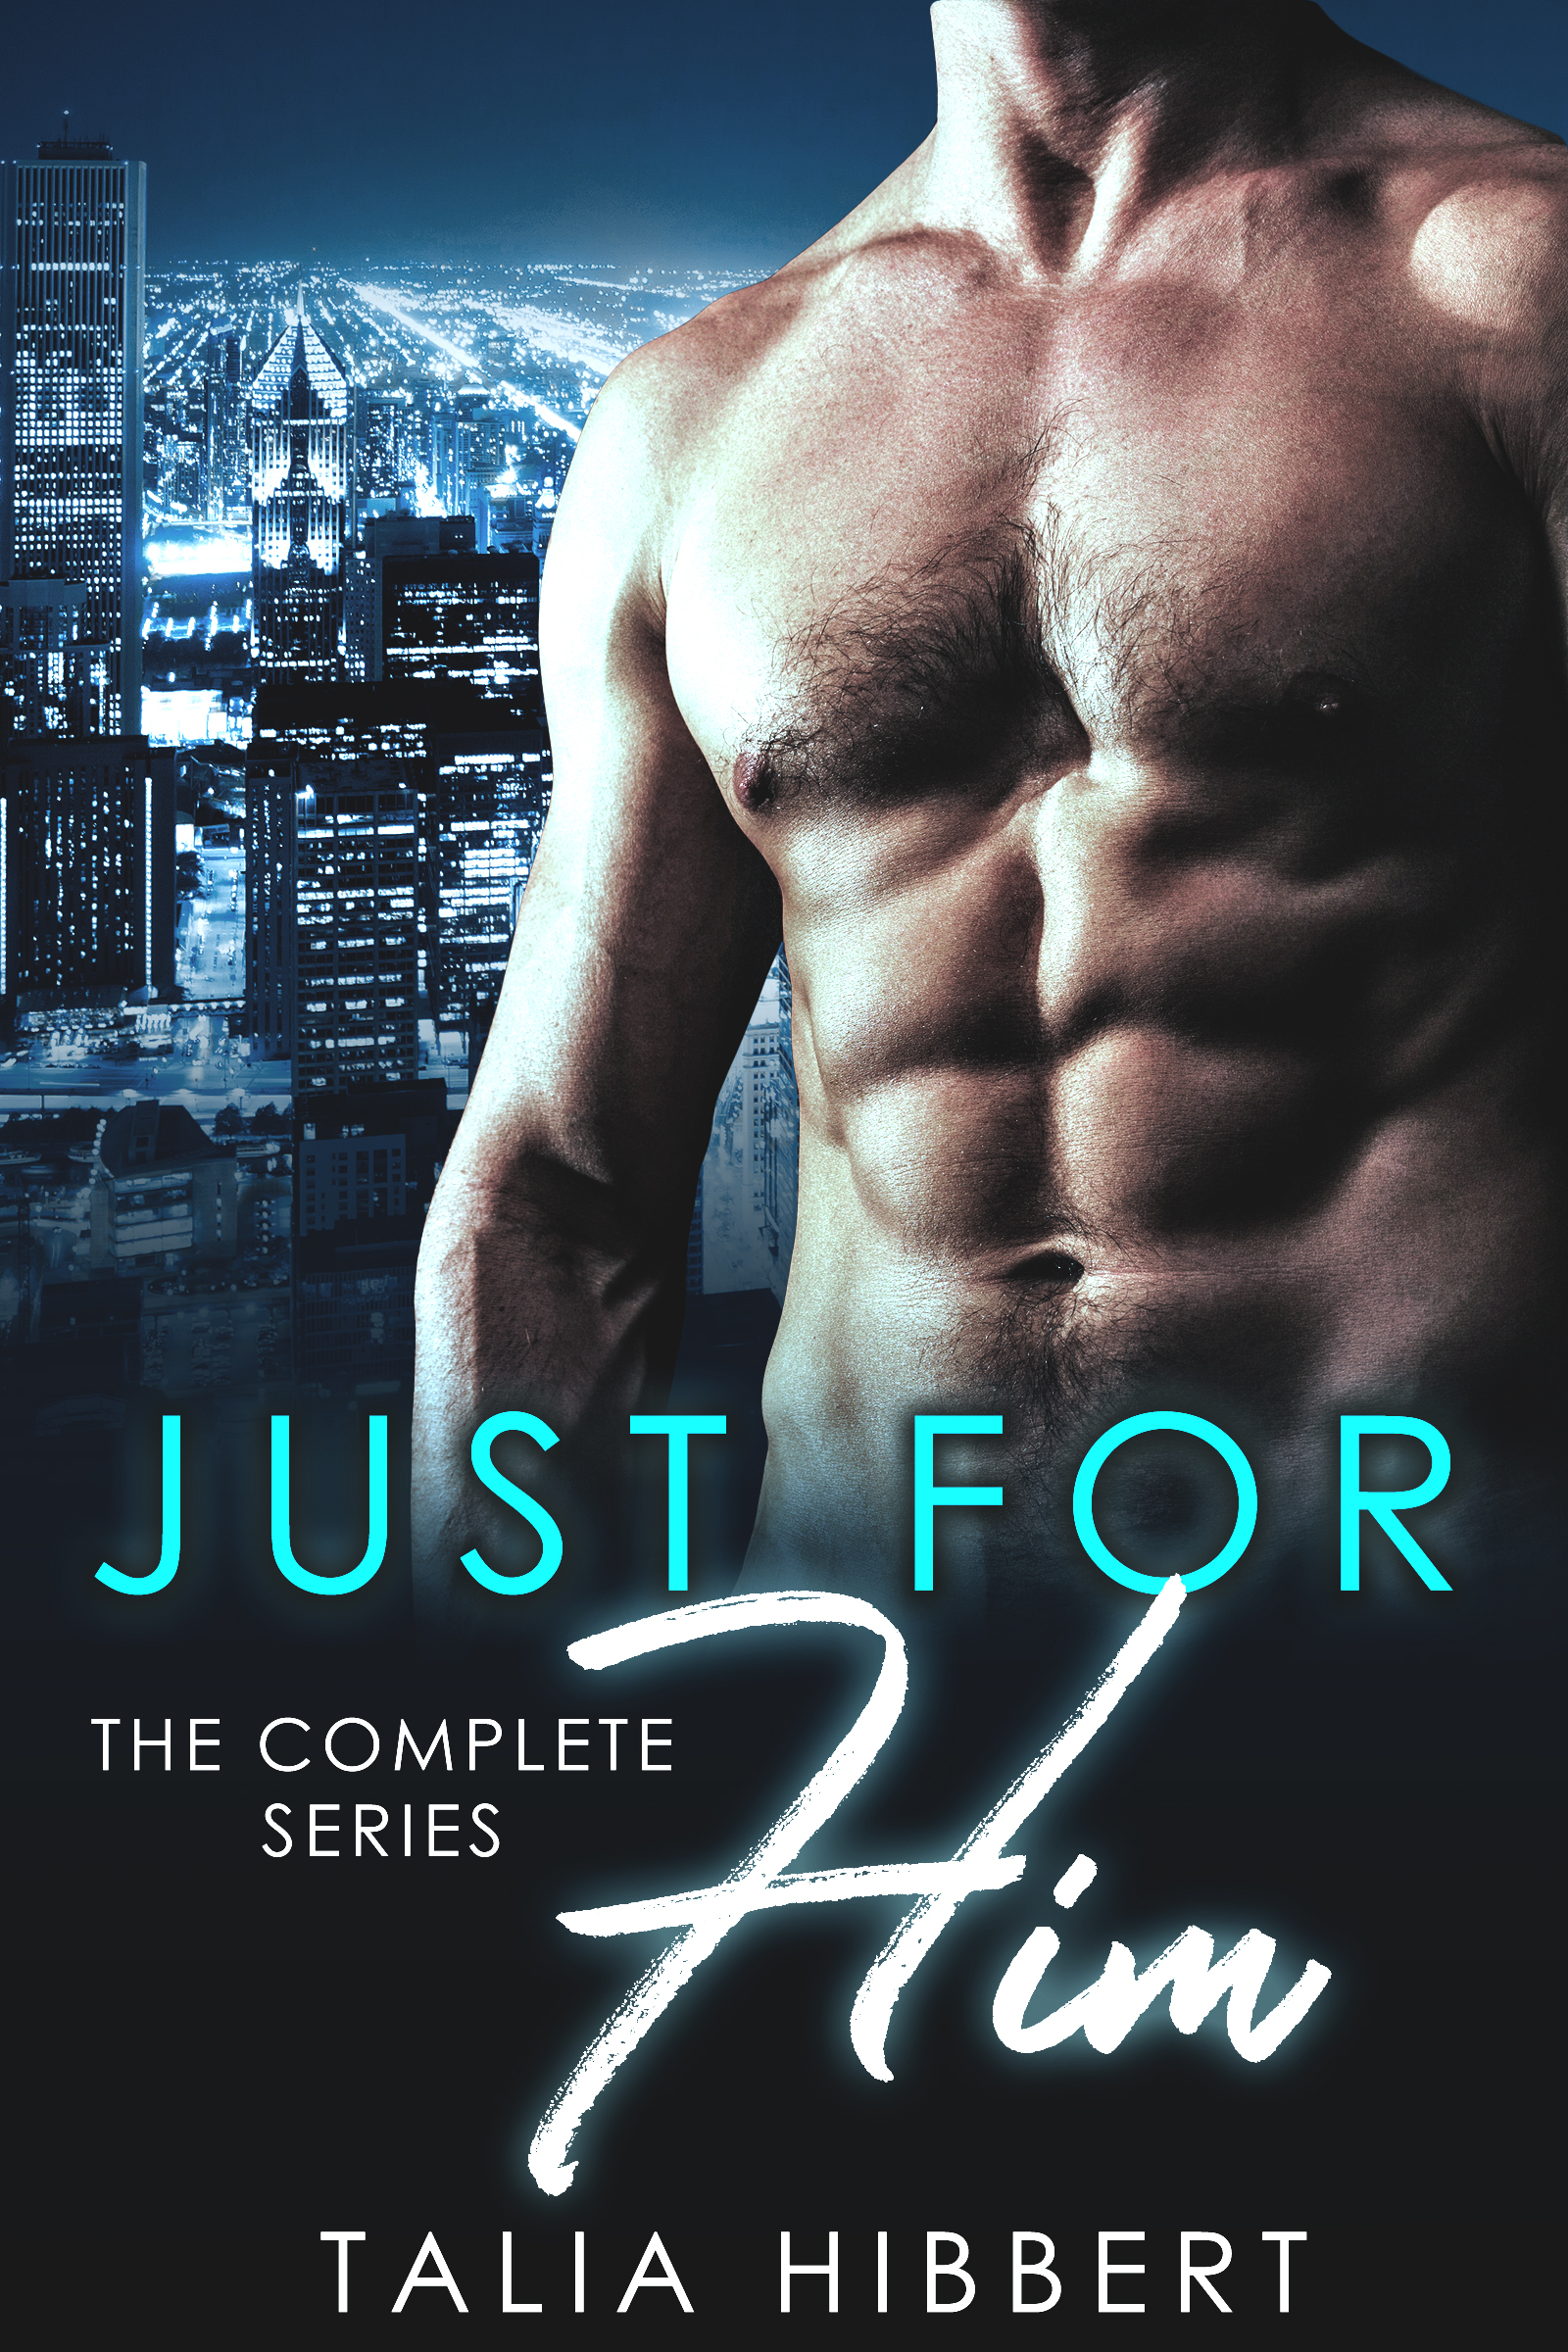 https://www.taliahibbert.com/wp-content/uploads/2019/01/Just-for-him-front-cover-box-set-2.jpg